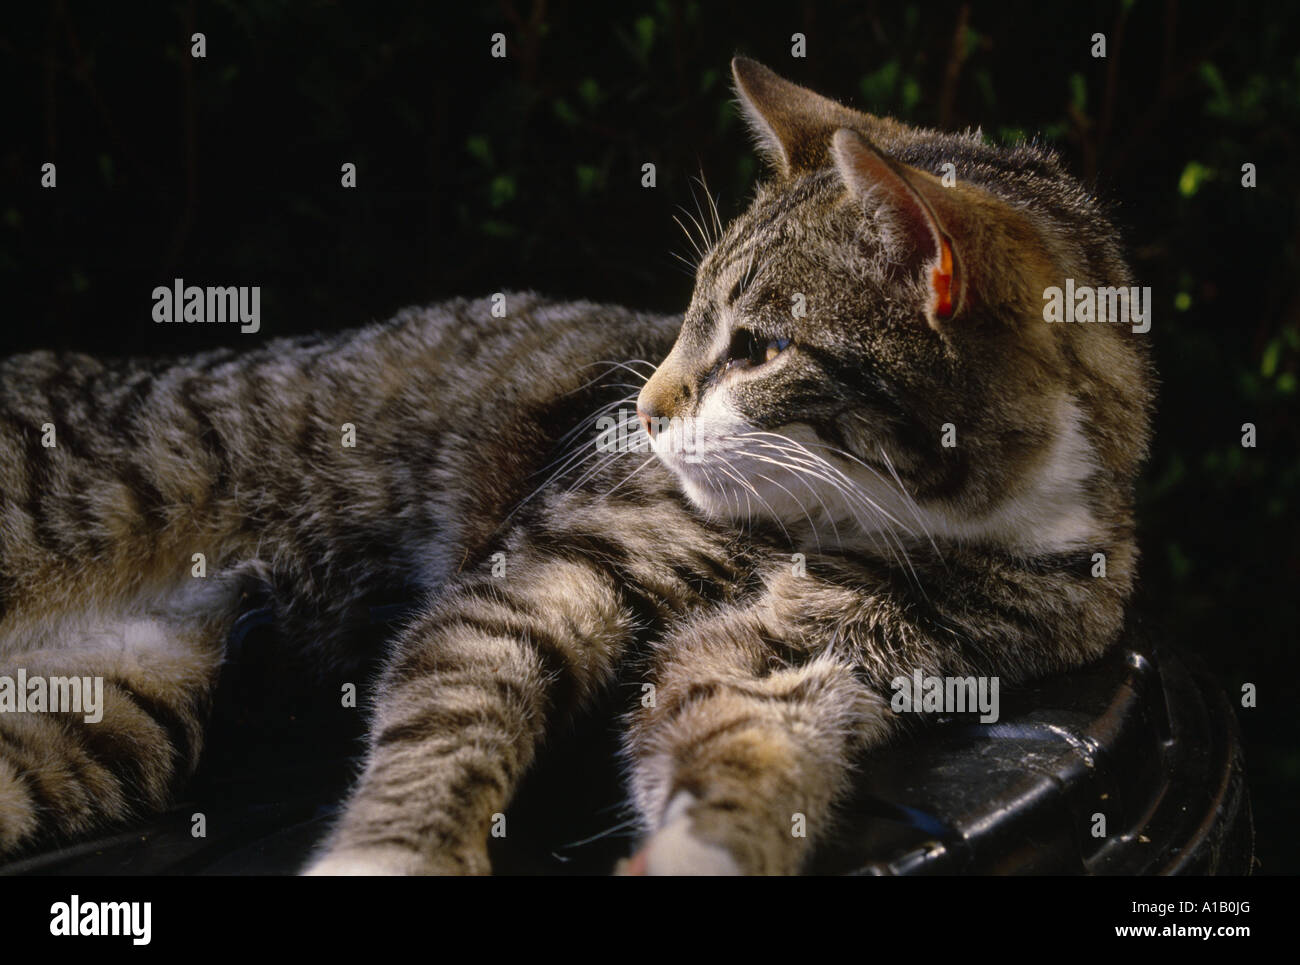 how to remove tick from cat